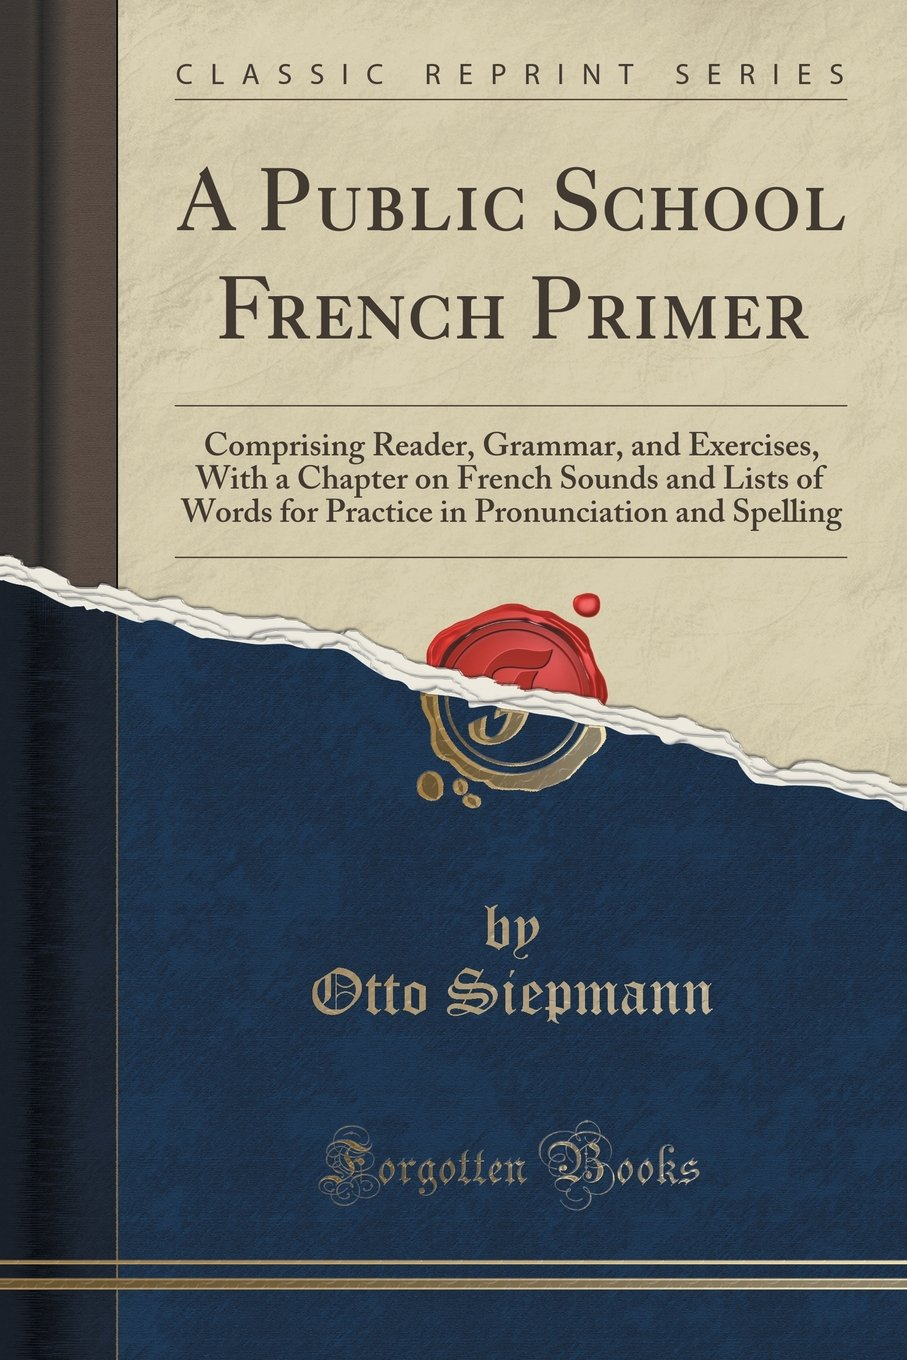 A Public School French Primer: Comprising Reader, Grammar, and Exercises, With a Chapter on French Sounds and Lists of Words for Practice in Pronunciation and Spelling (Classic Reprint) PDF